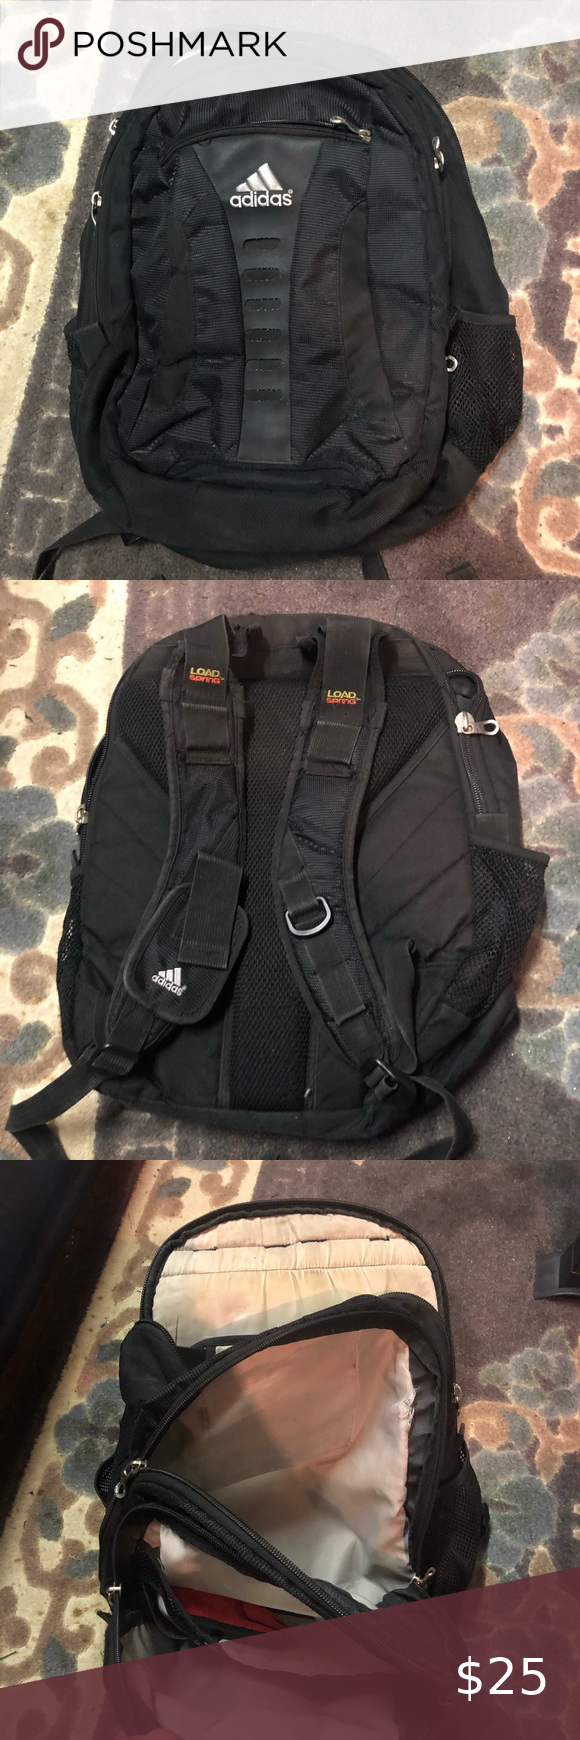 Adidas Backpack Adidas Backpack Black adidas Bags